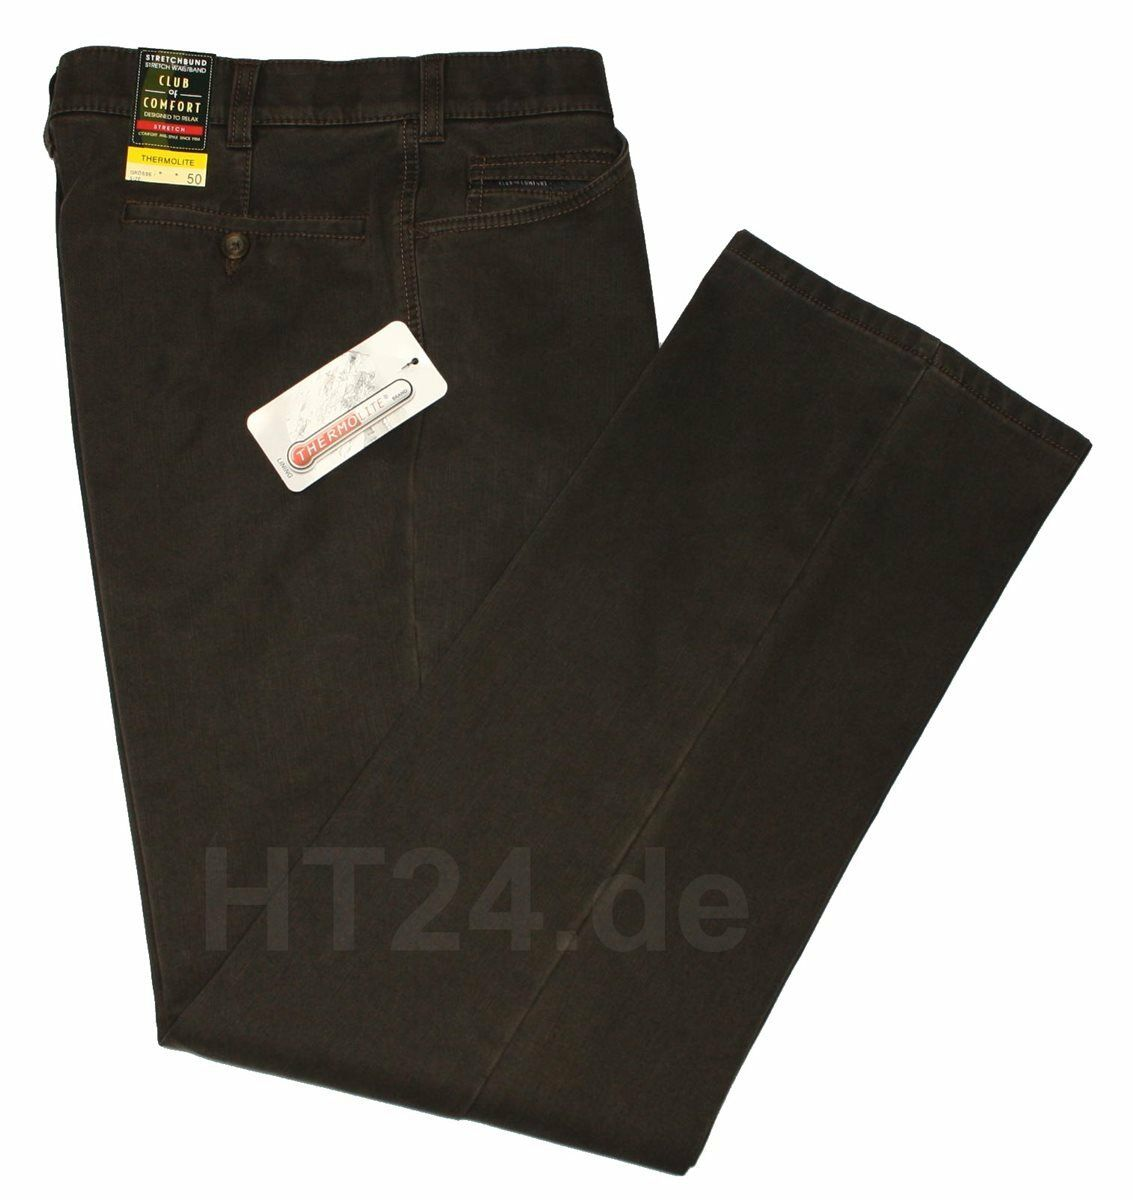 3620046 Club of Comfort Termo Jeans Liam tg. 48 Marronee Scuro Stretch 5225